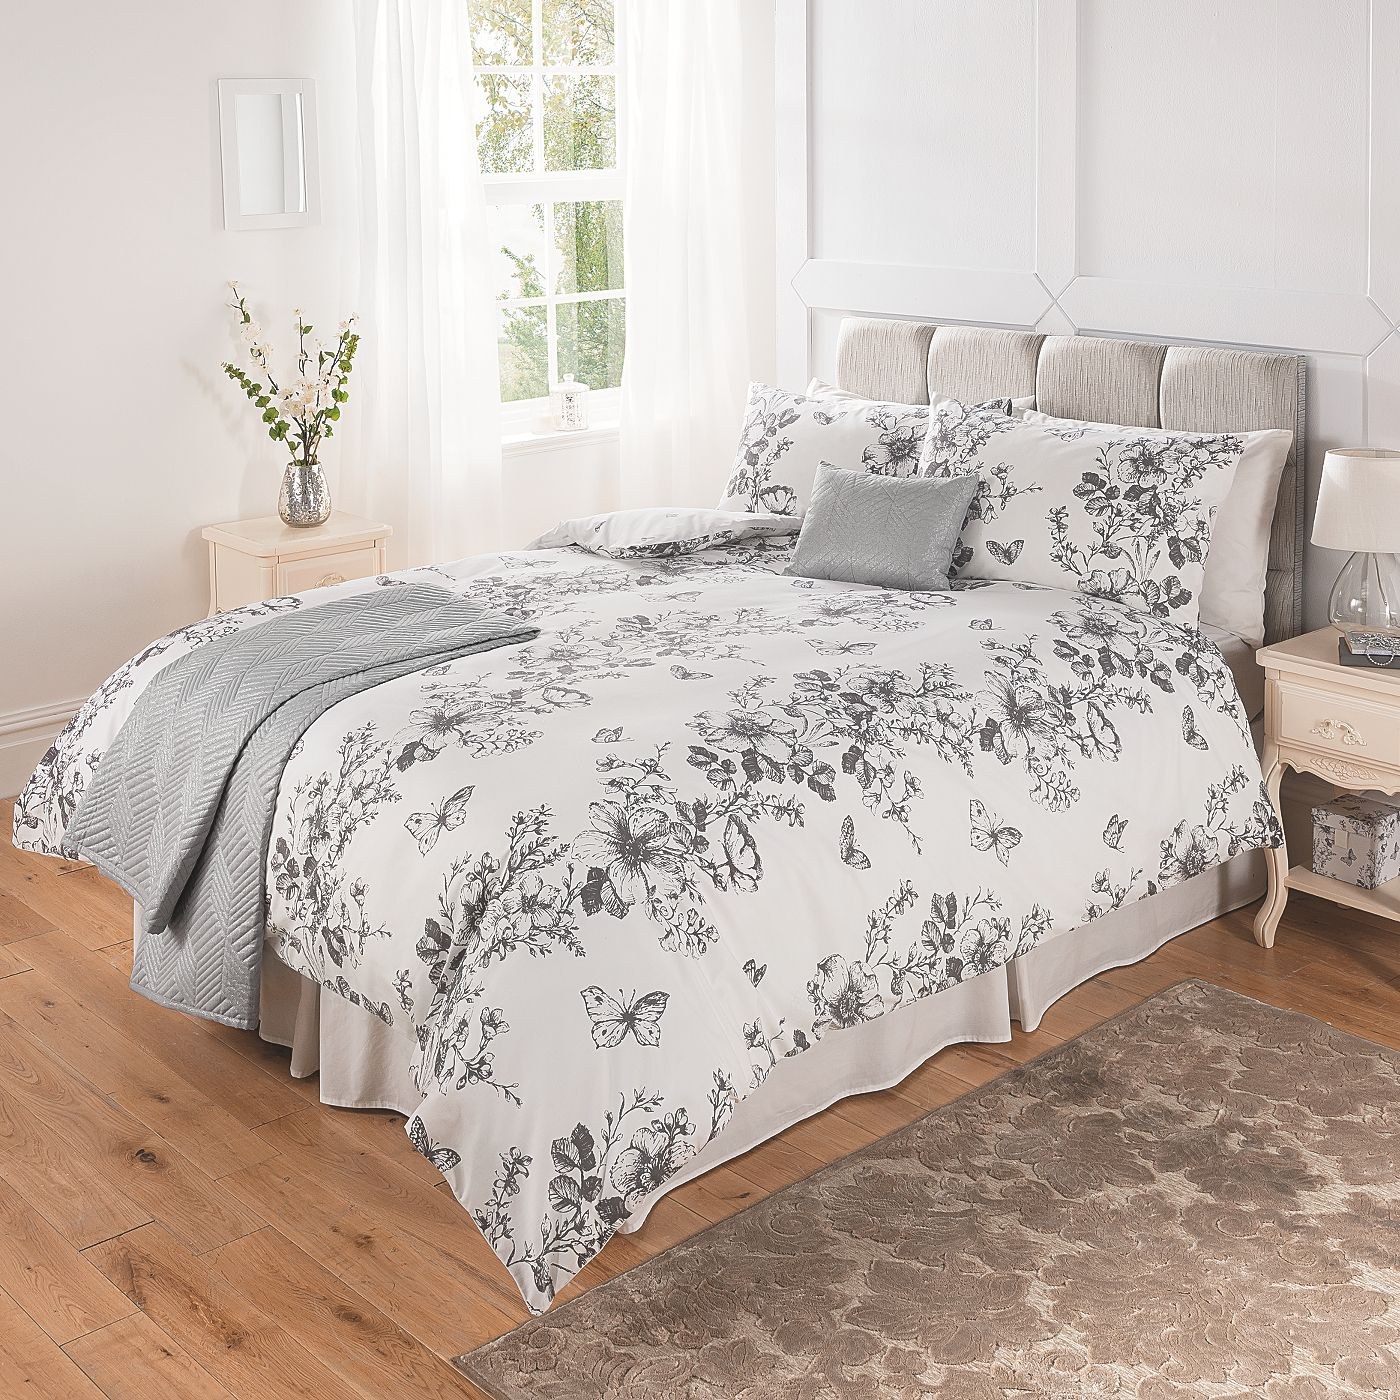 George Home Butterfly Trail Duvet Range Bedding